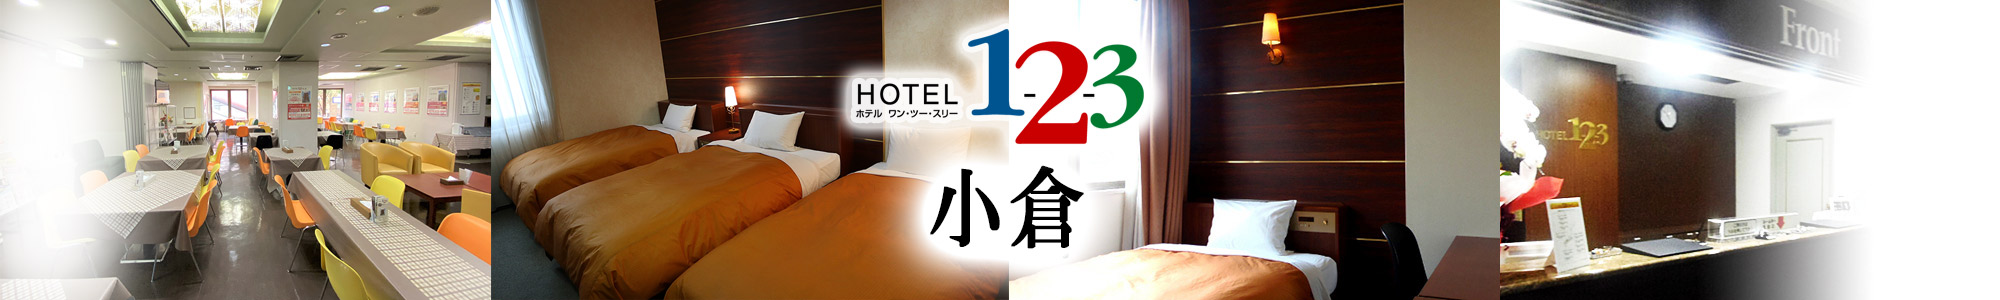 Hotel hotel 1-2-3 to wear color